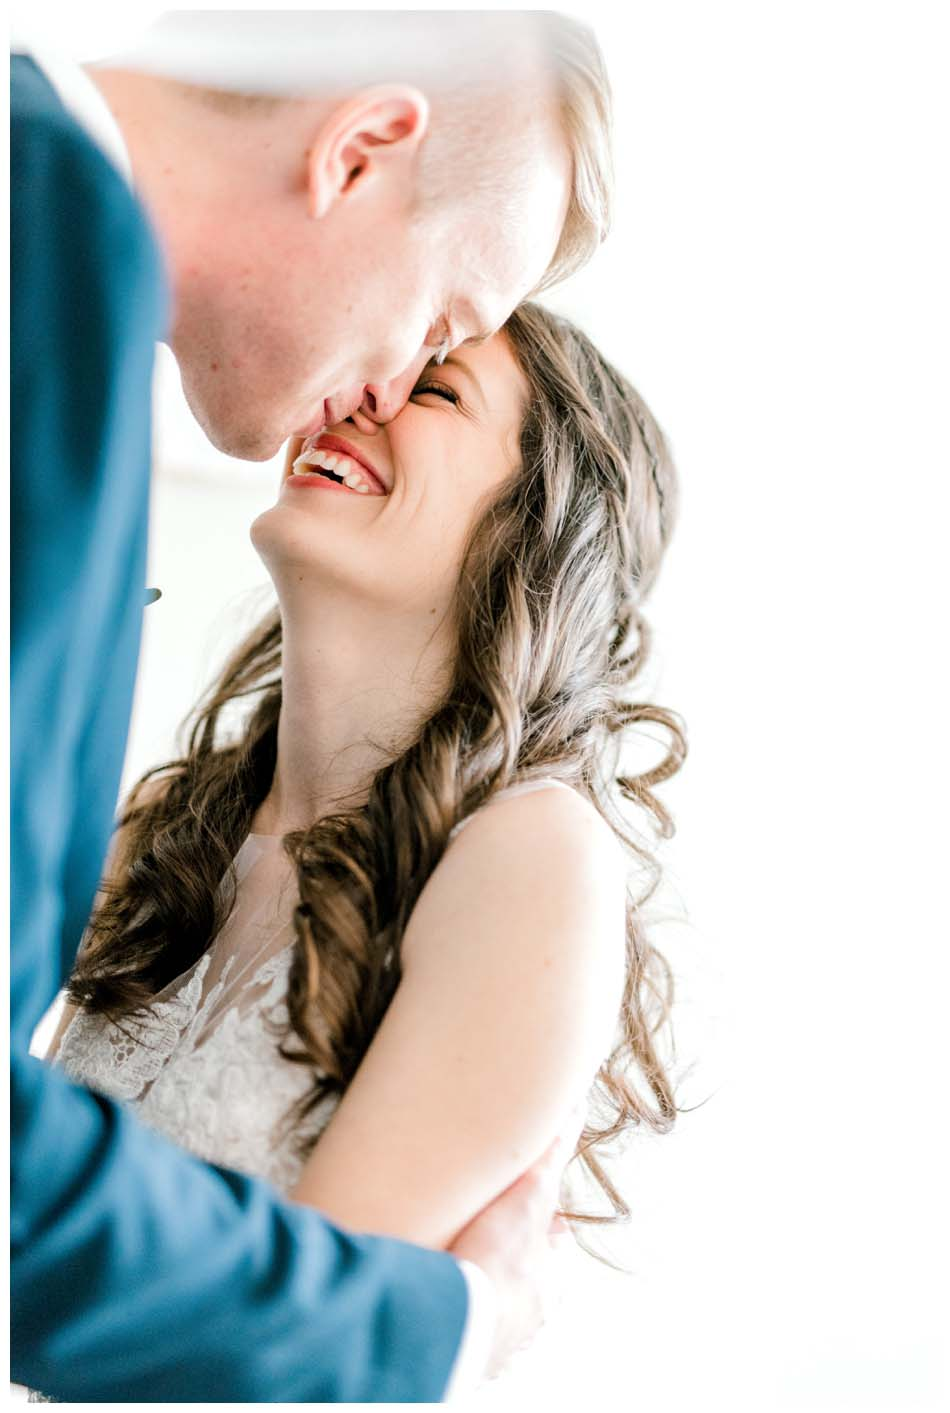 ocala-winter-haven-natural-wedding-photographer-candid-lifestyle-gainseville-florida-photography-st-pete-classic-vintage-bride-groom-teal_0303.jpg